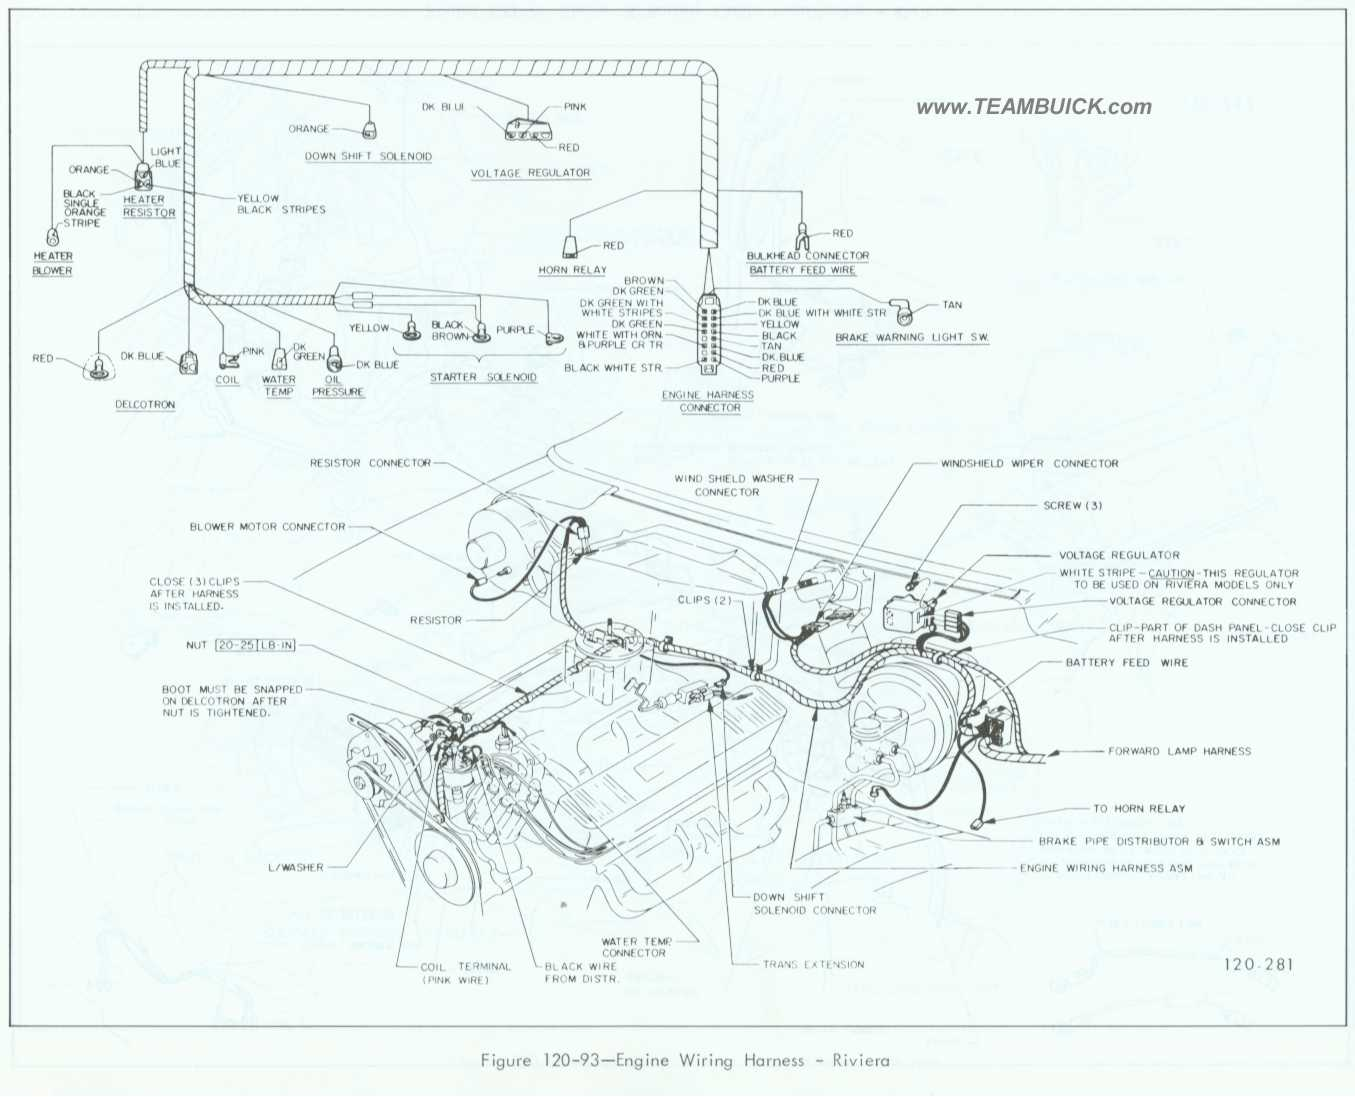 67 Buick Wiring Diagram The Portal And Forum Of 2011 Regal Engine 1967 Riviera Harness Rh Teambuick Com 1996 Diagrams Lucerne Door